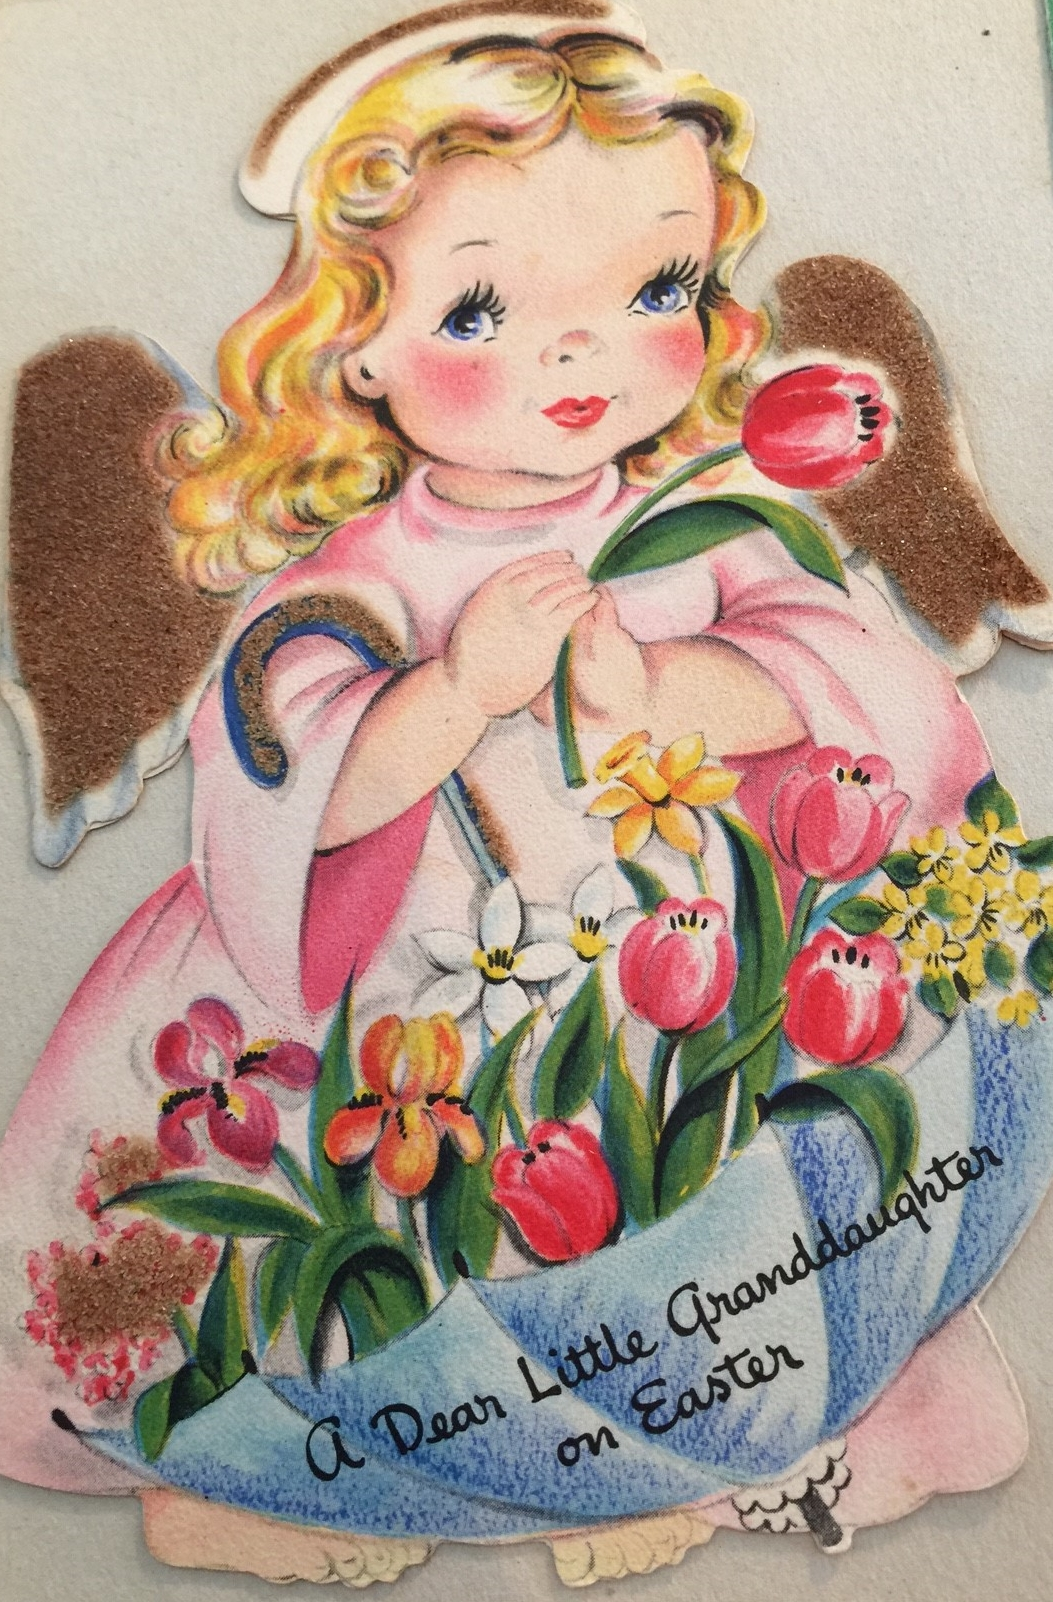 Easter card from my maternal grandmother found in my baby book ... fuzzy brown wings